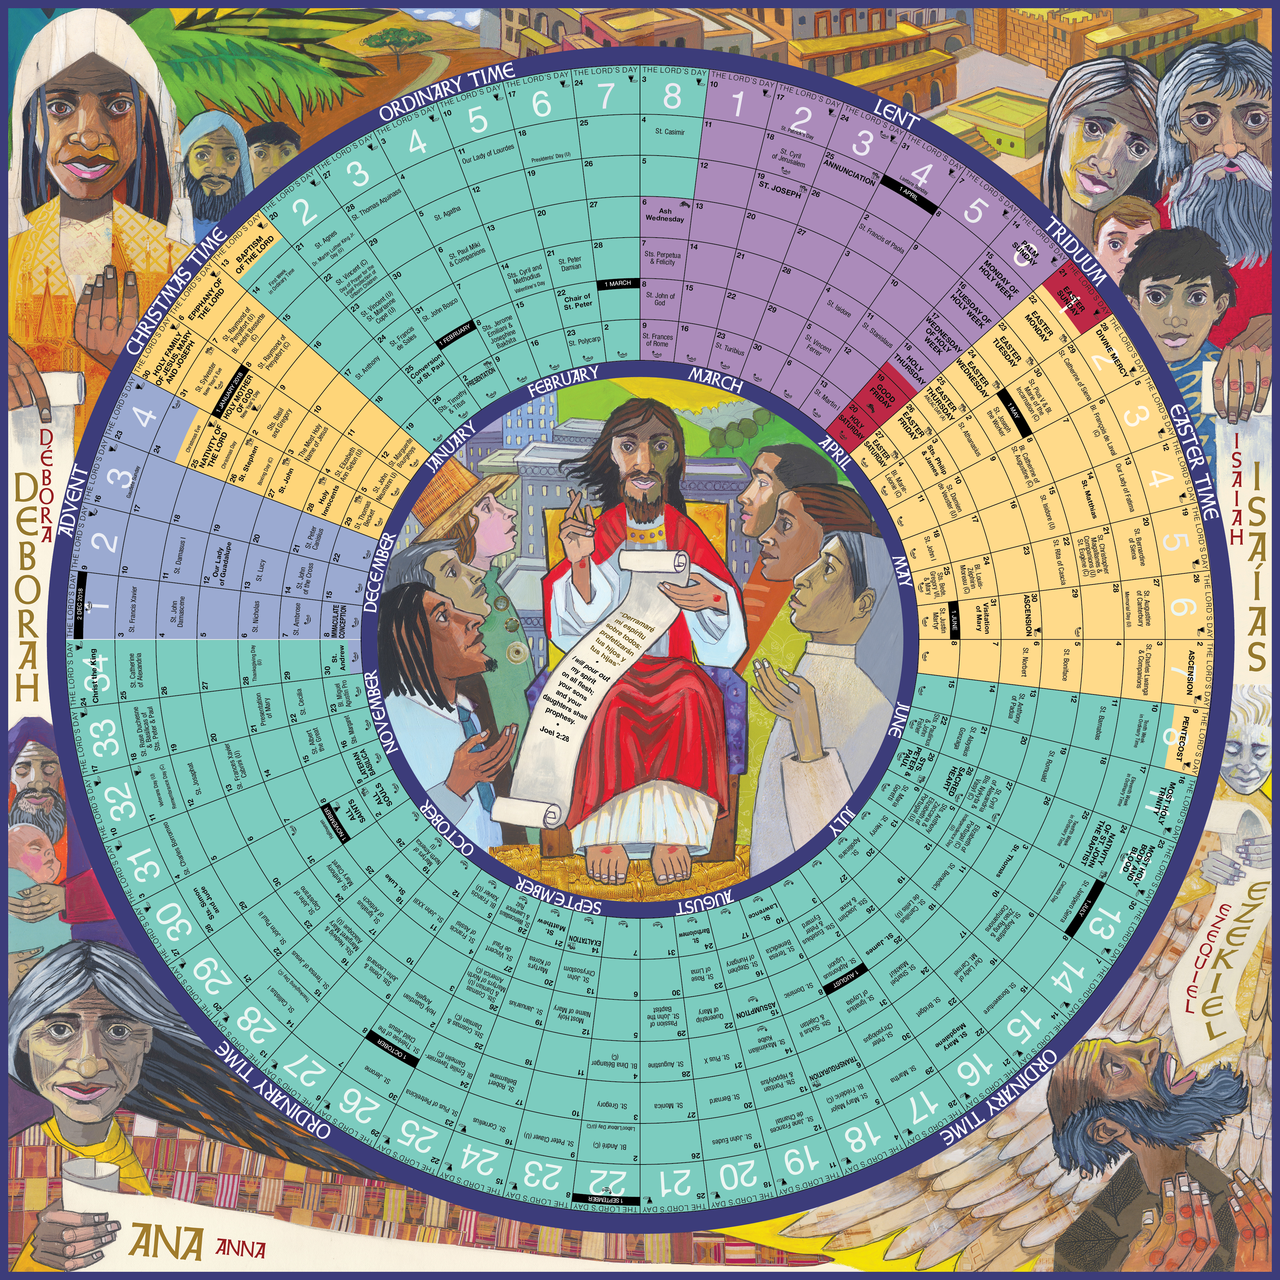 2019 Year of Grace Liturgical Calendar poster 24 by 24 inch sheet 9781616714062 YG19LP 97464.1532094333